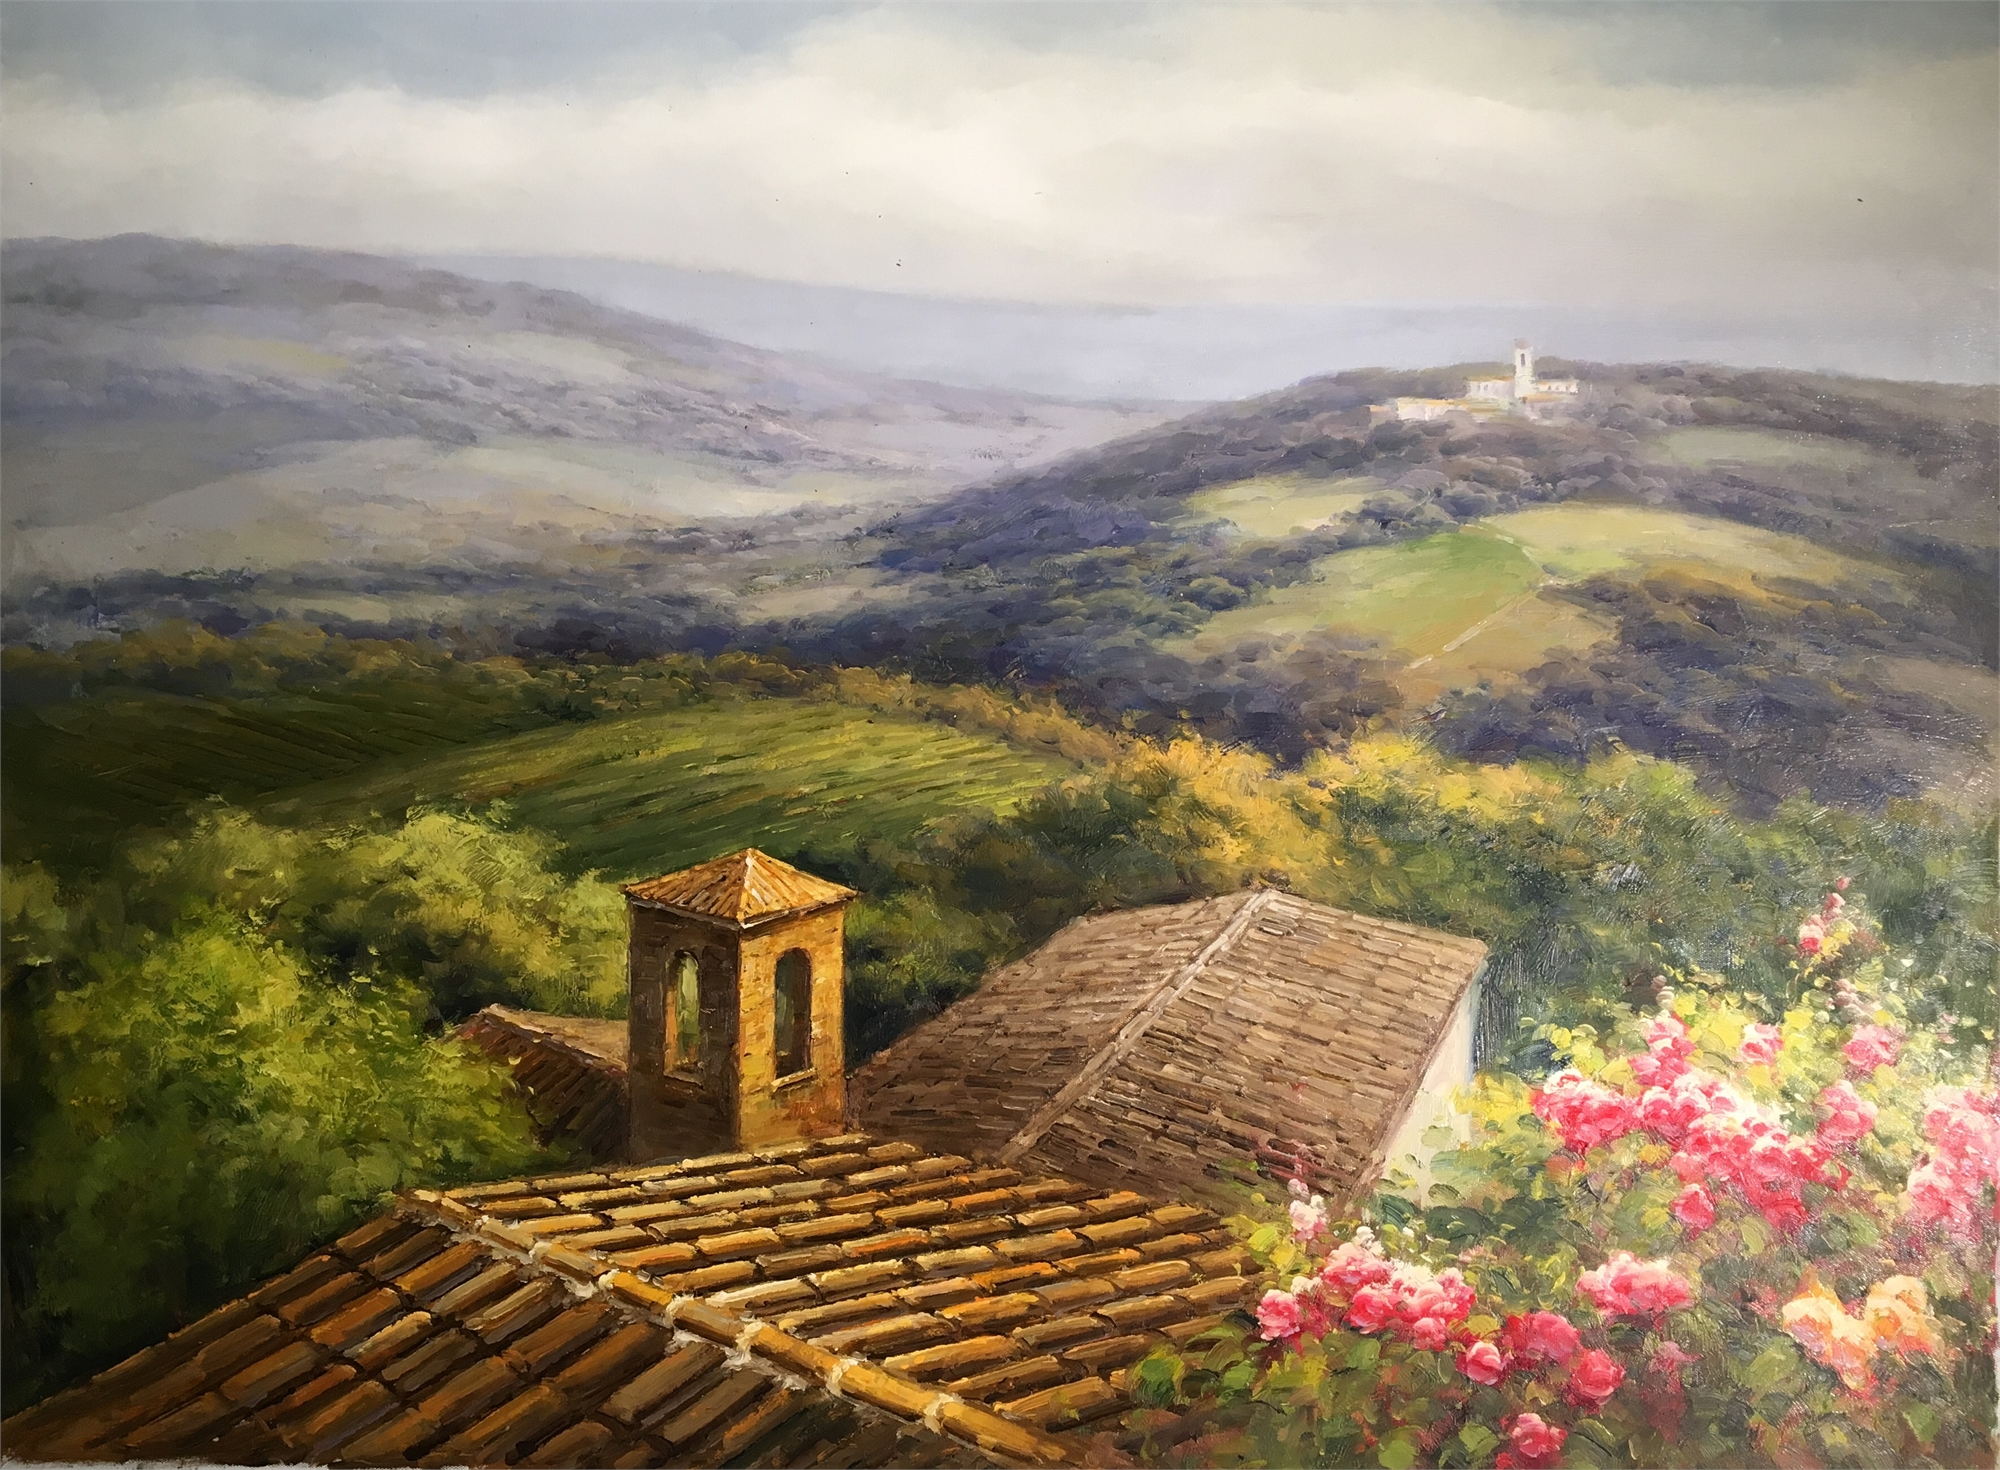 SPECTACULAR VISTA by VARIOUS WORKS